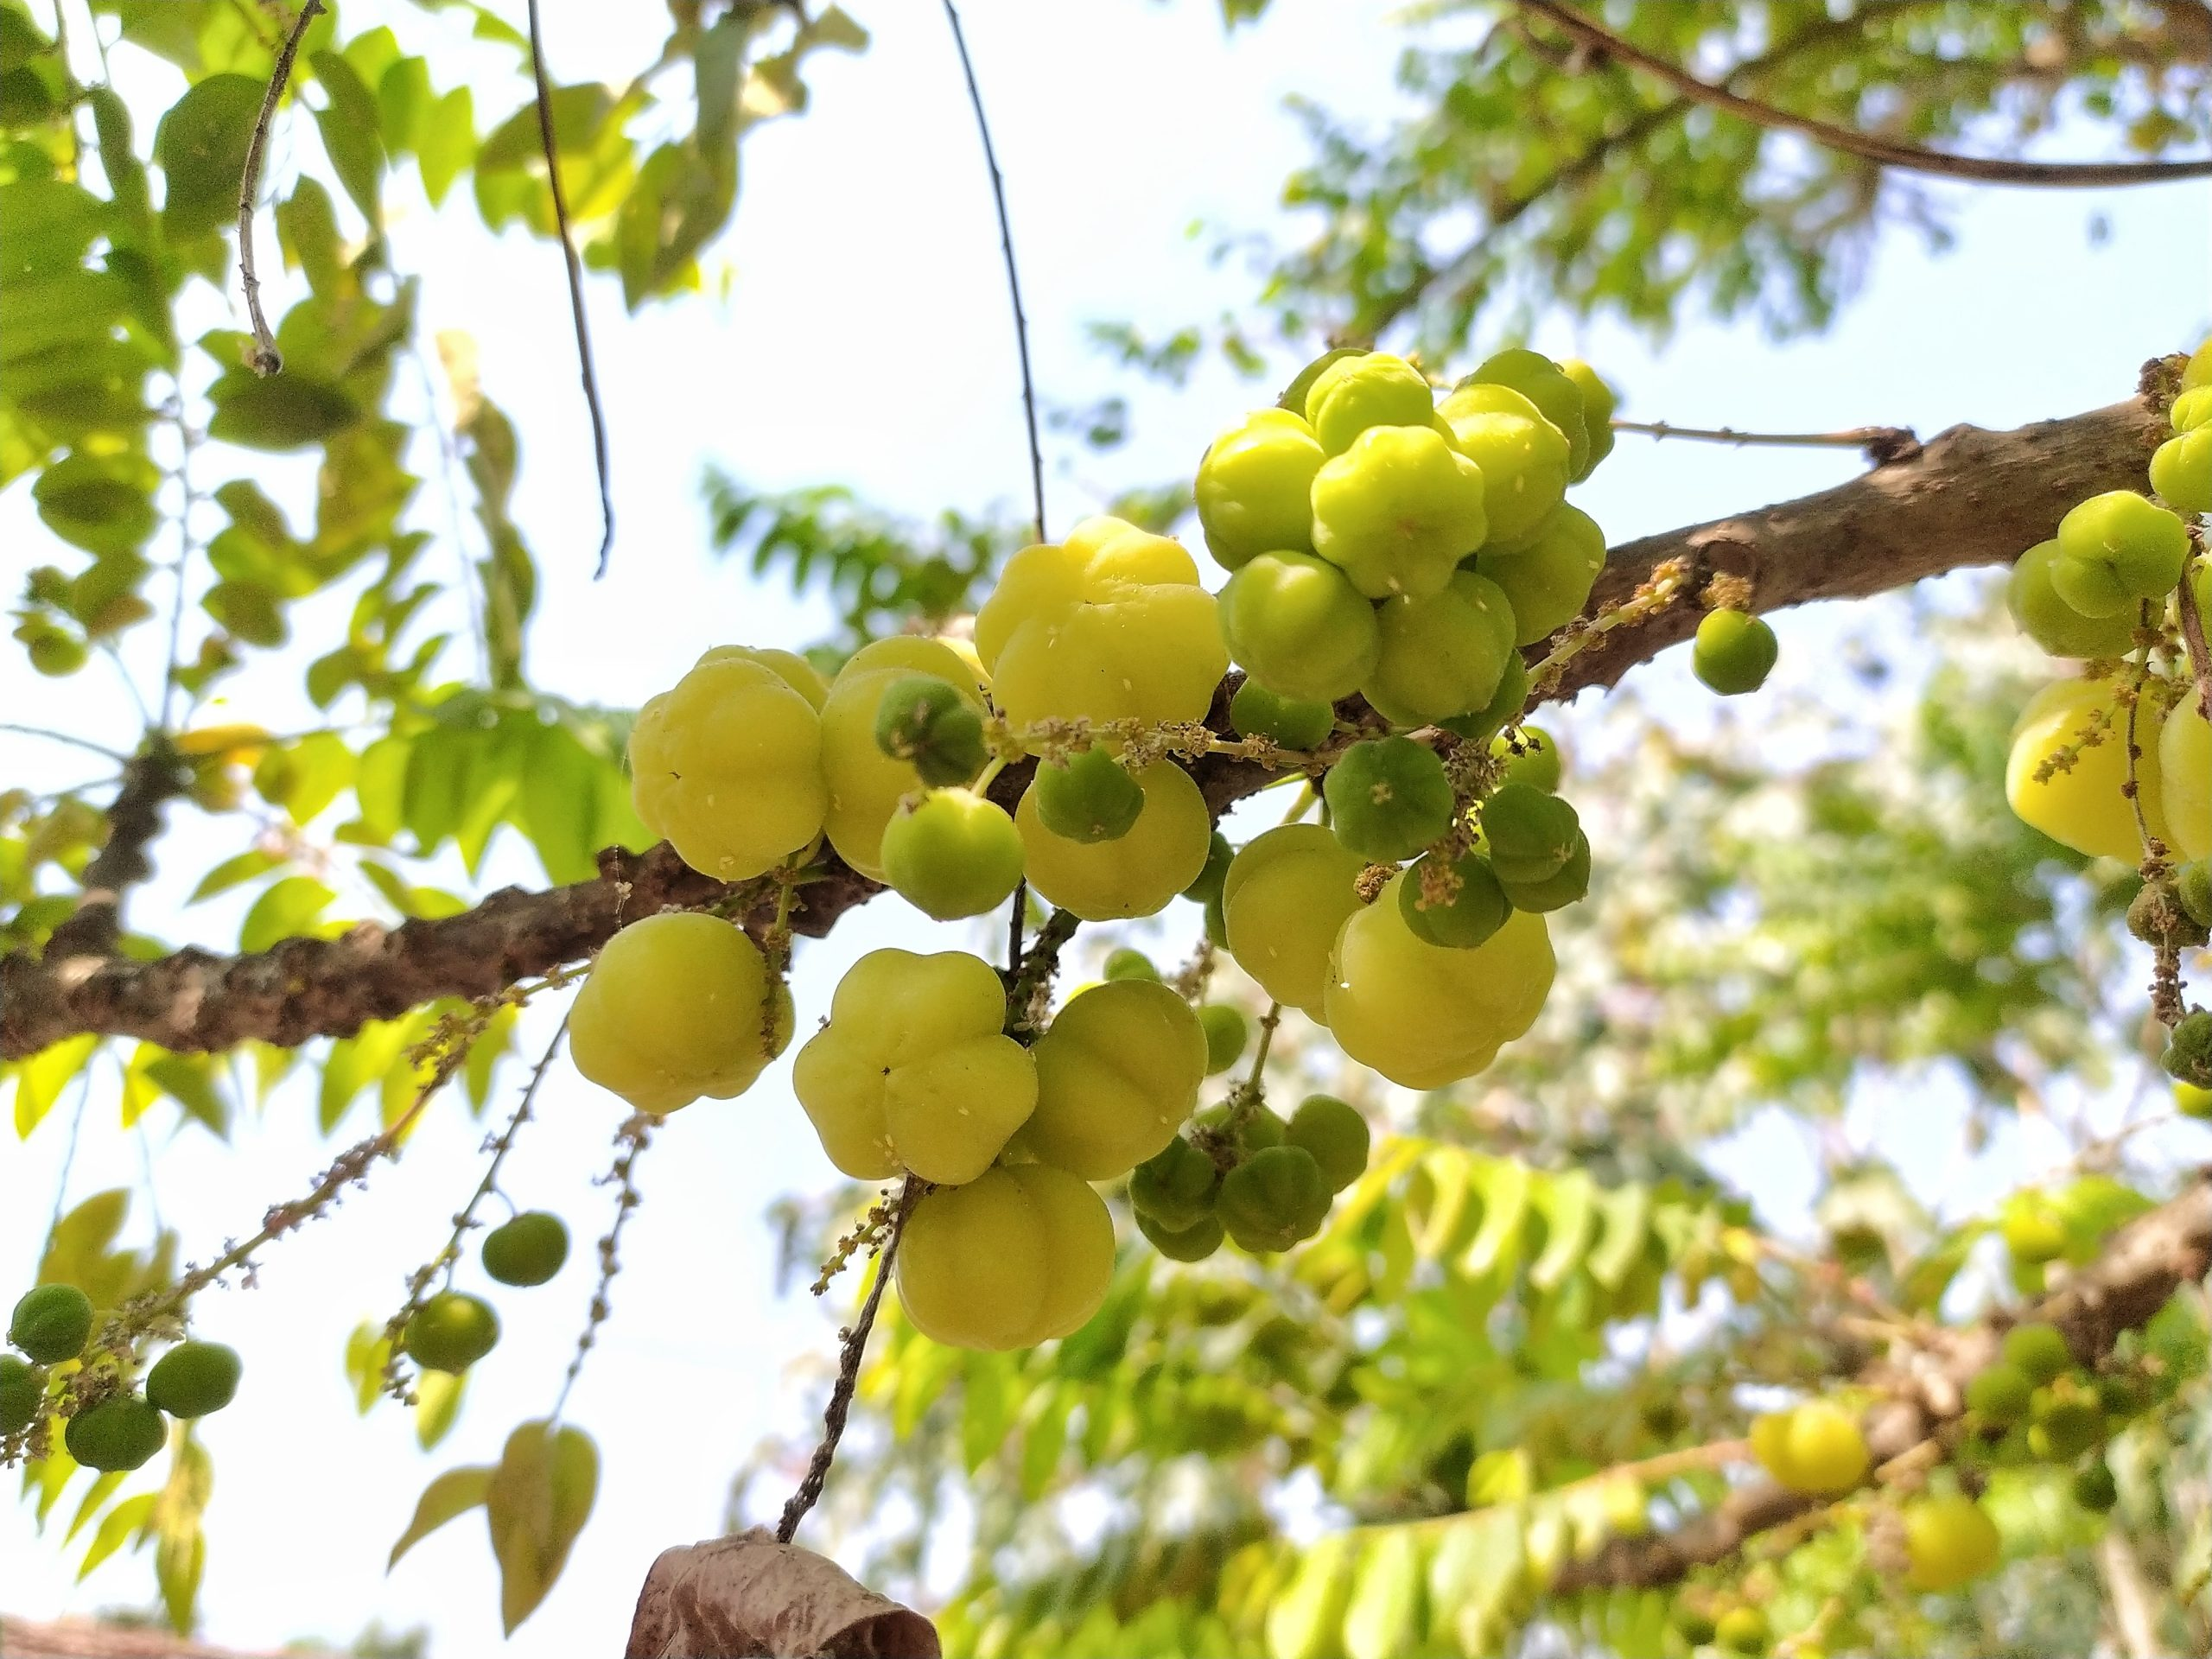 Fruits of Phyllanthus acidus